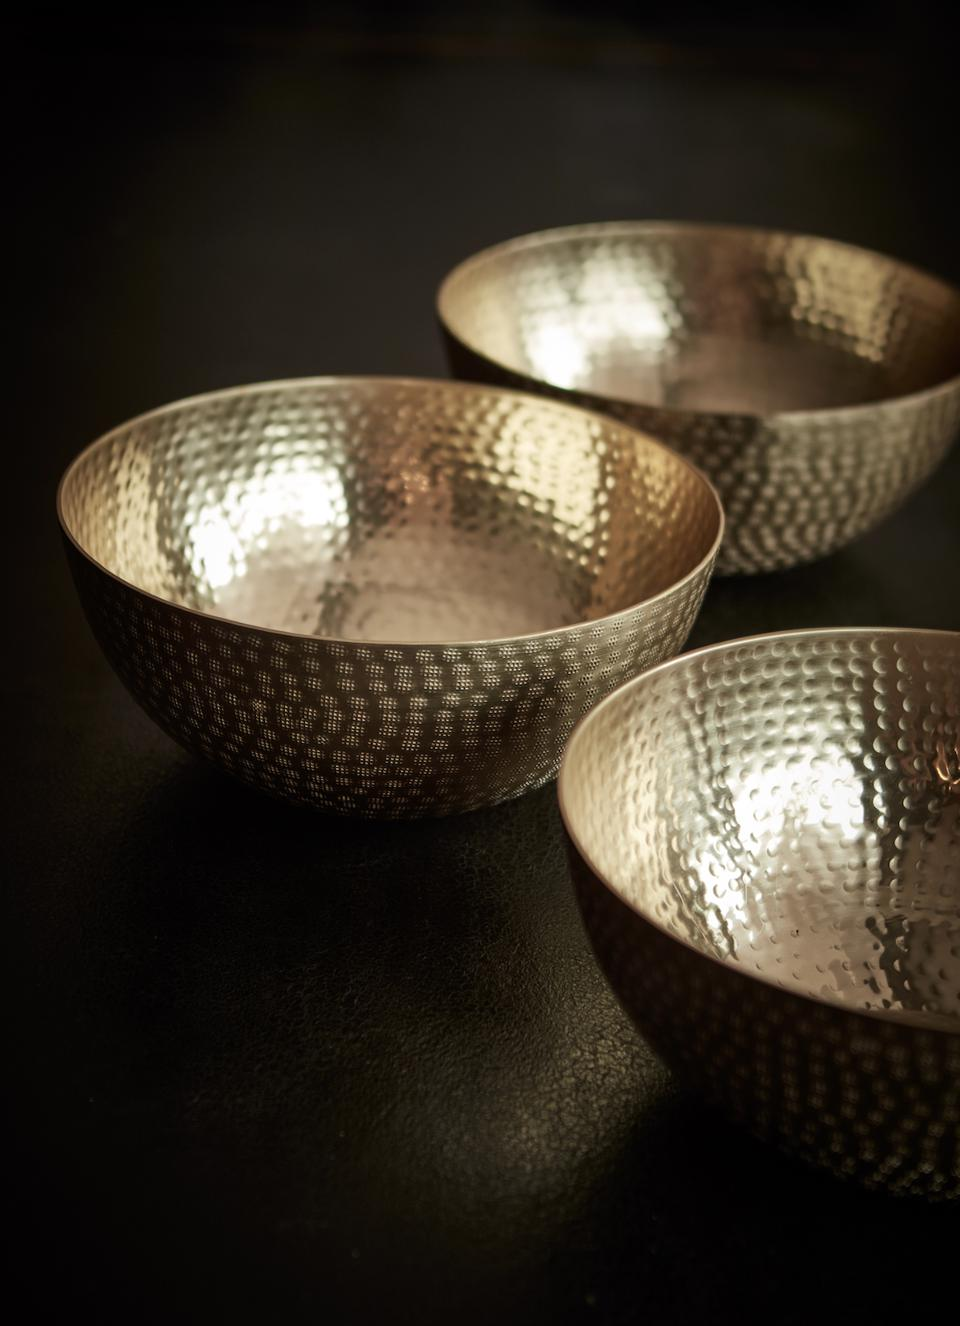 Bronze bowls with a unique handcrafted texture.